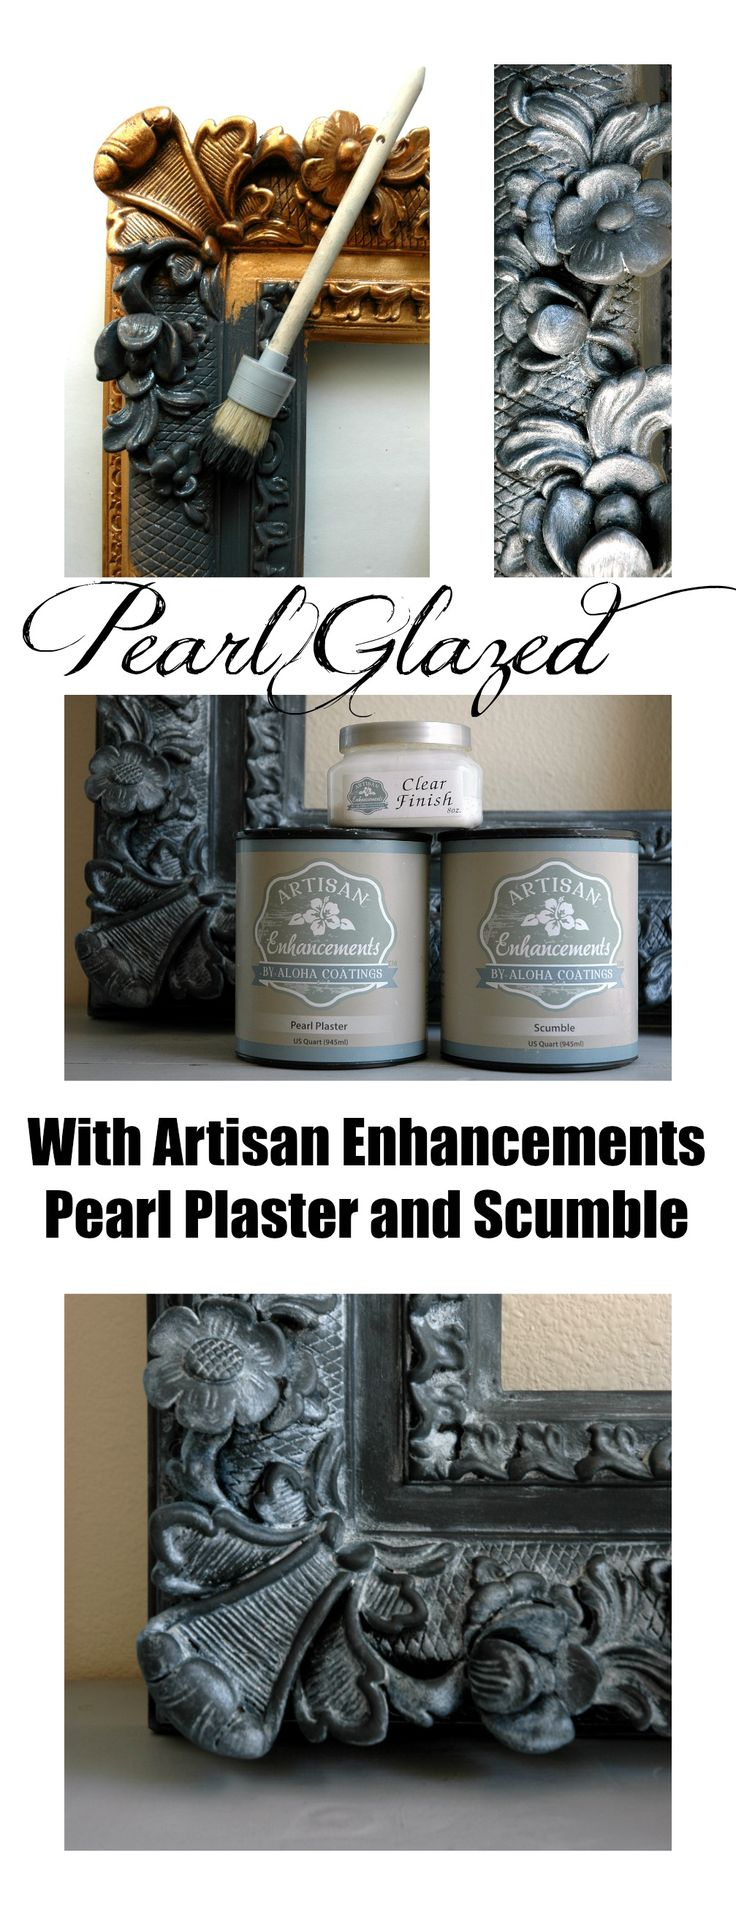 Pearl Glazed with Artisan Enhancements Pearl Plaster and Scumble – Artisan Enhancements